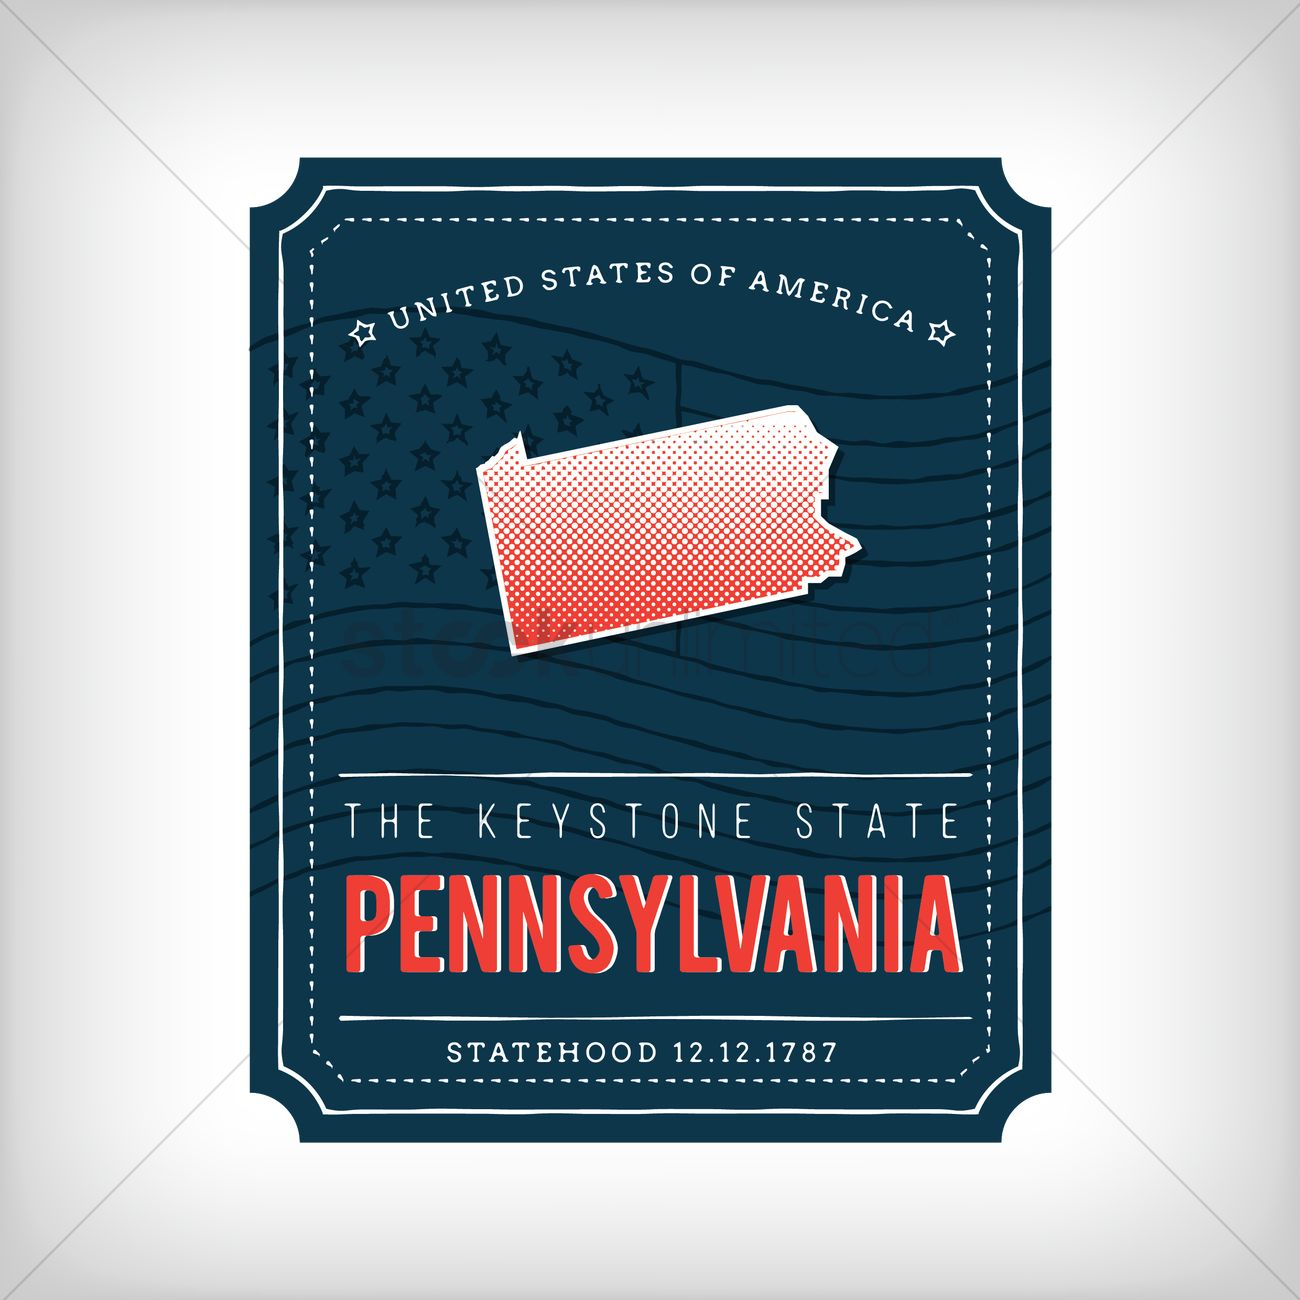 Pennsylvania map Vector Image - 1623691 | StockUnlimited on mountain state map, sioux falls state map, dupont state map, louisville state map, pueblo state map, arlington state map, sunshine state map, jefferson state map, aurora state map, union state map, webster state map, keystone city, empire state map, florence state map, north washington state map, national state map, beehive state map, highlands ranch state map, fort morgan state map, great lakes state map,